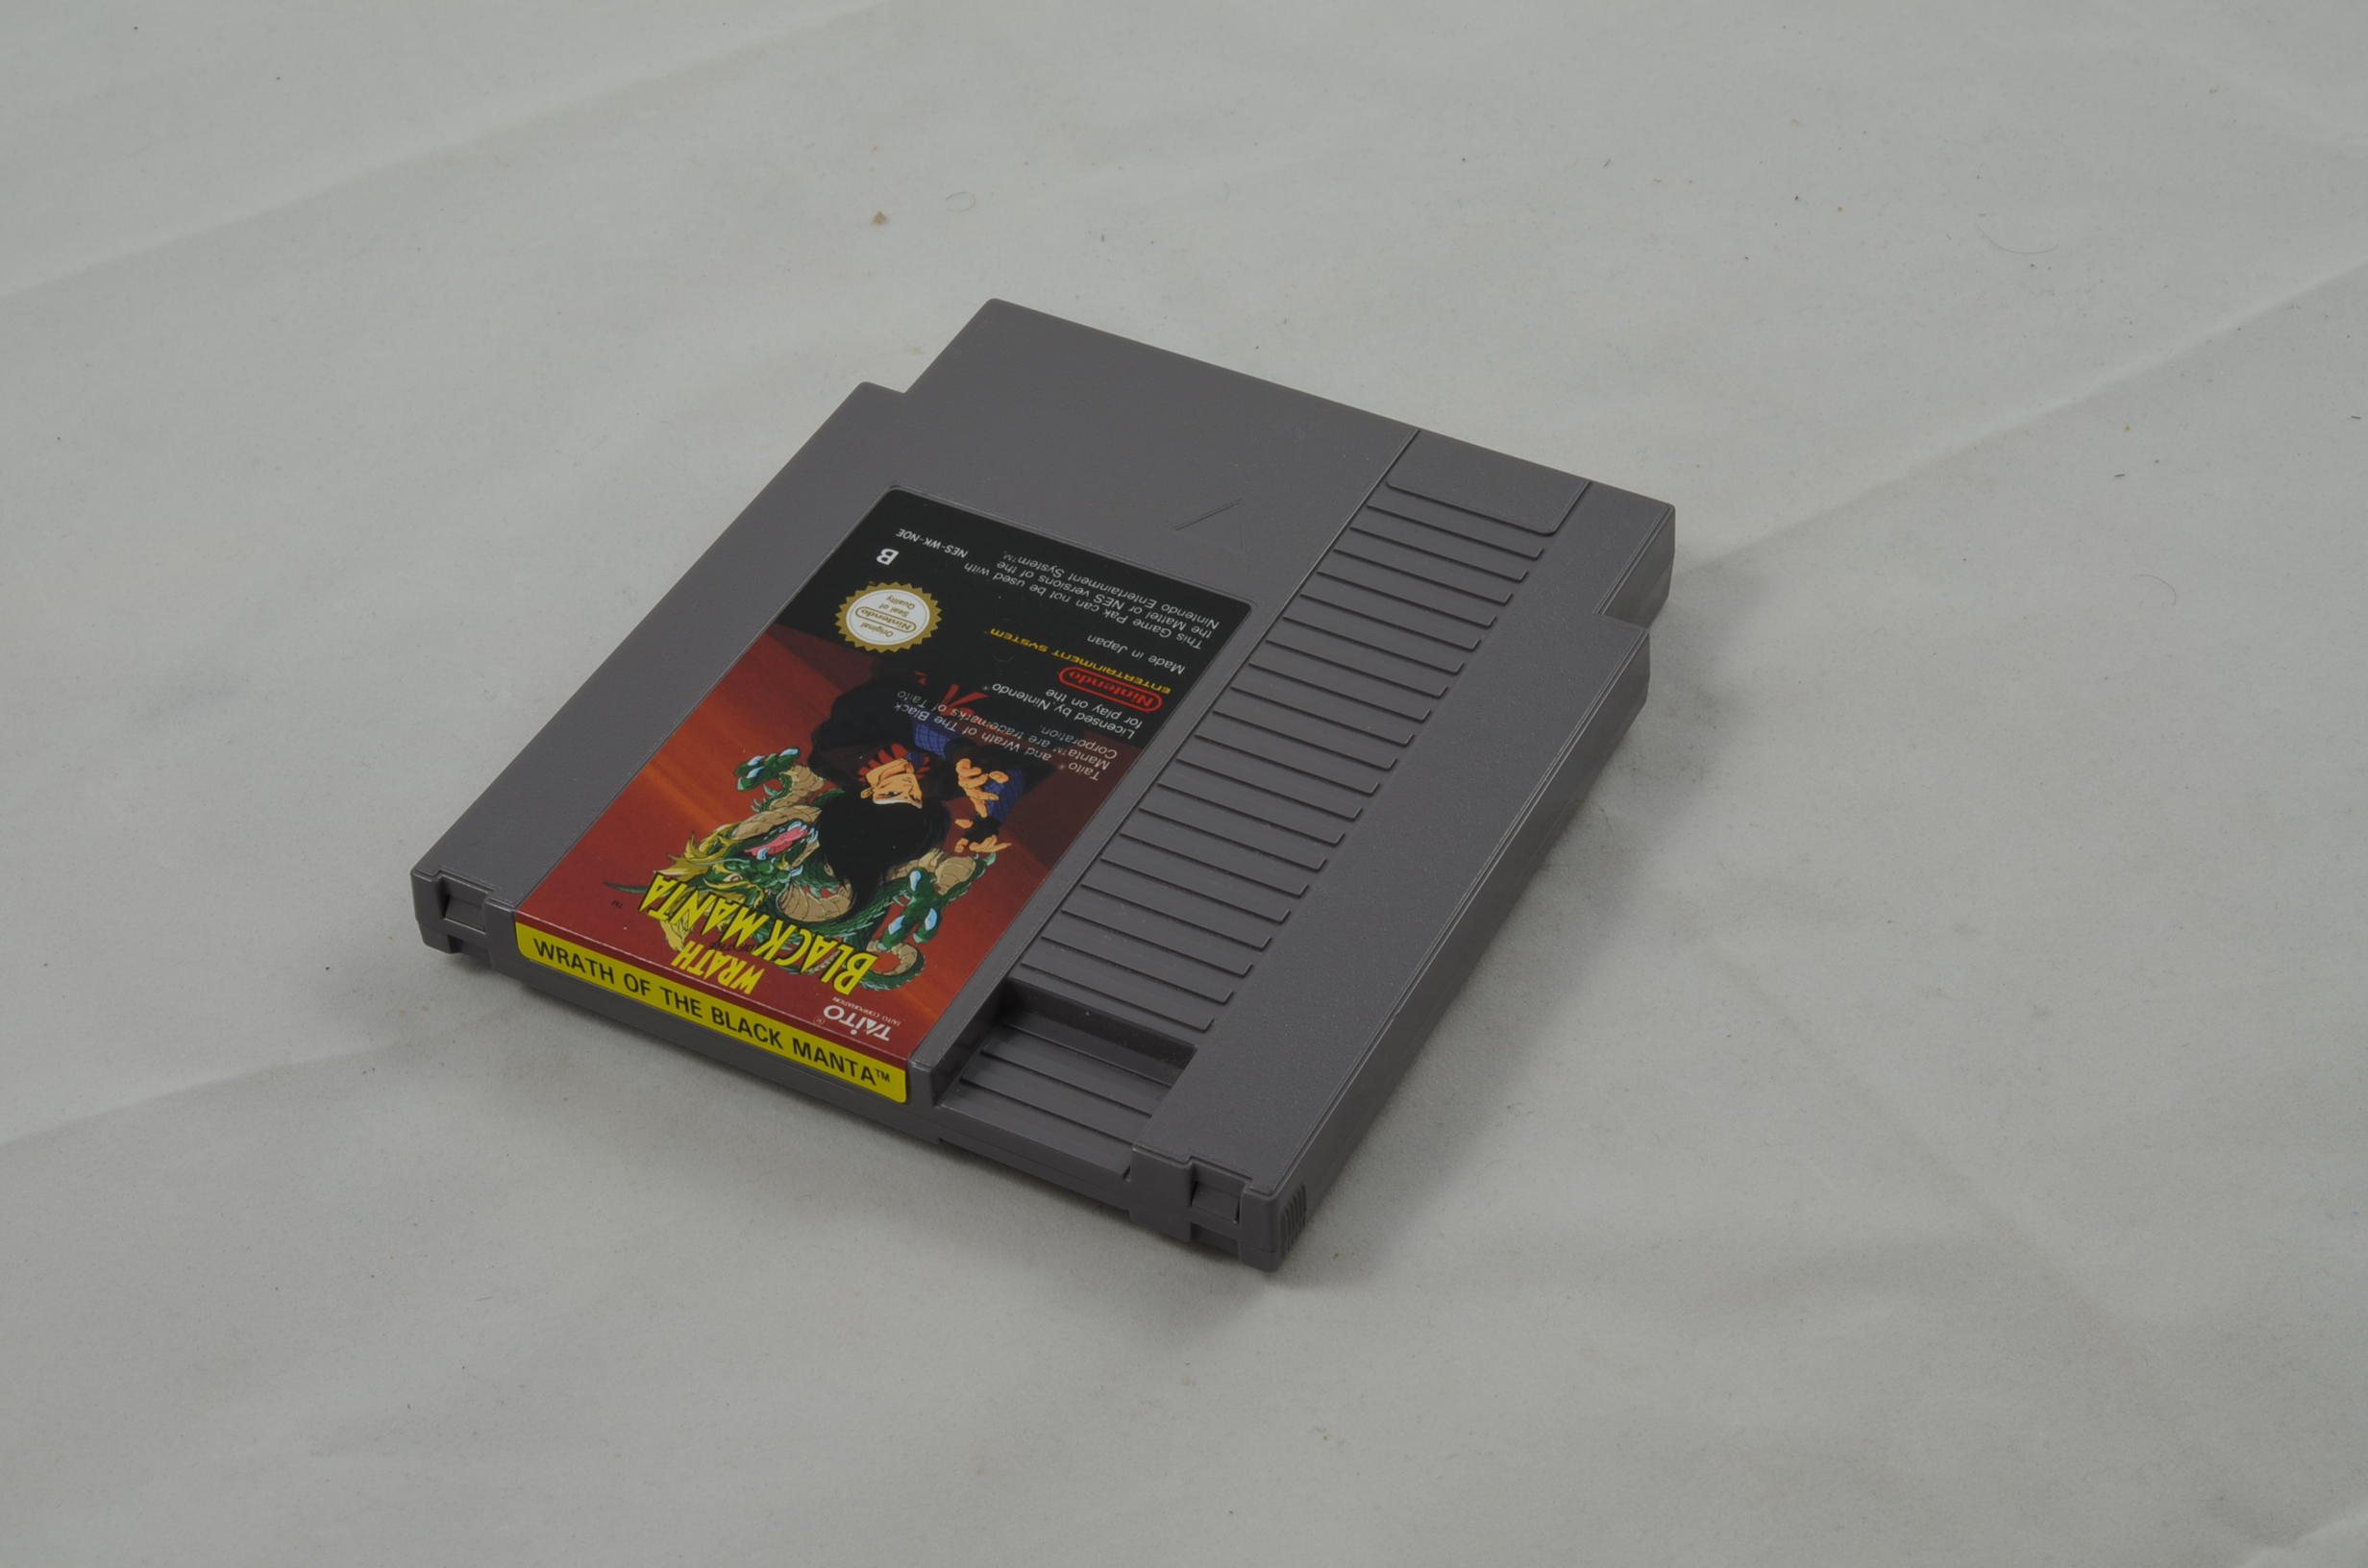 Produktbild von Wrath of the Black Manta NES Spiel